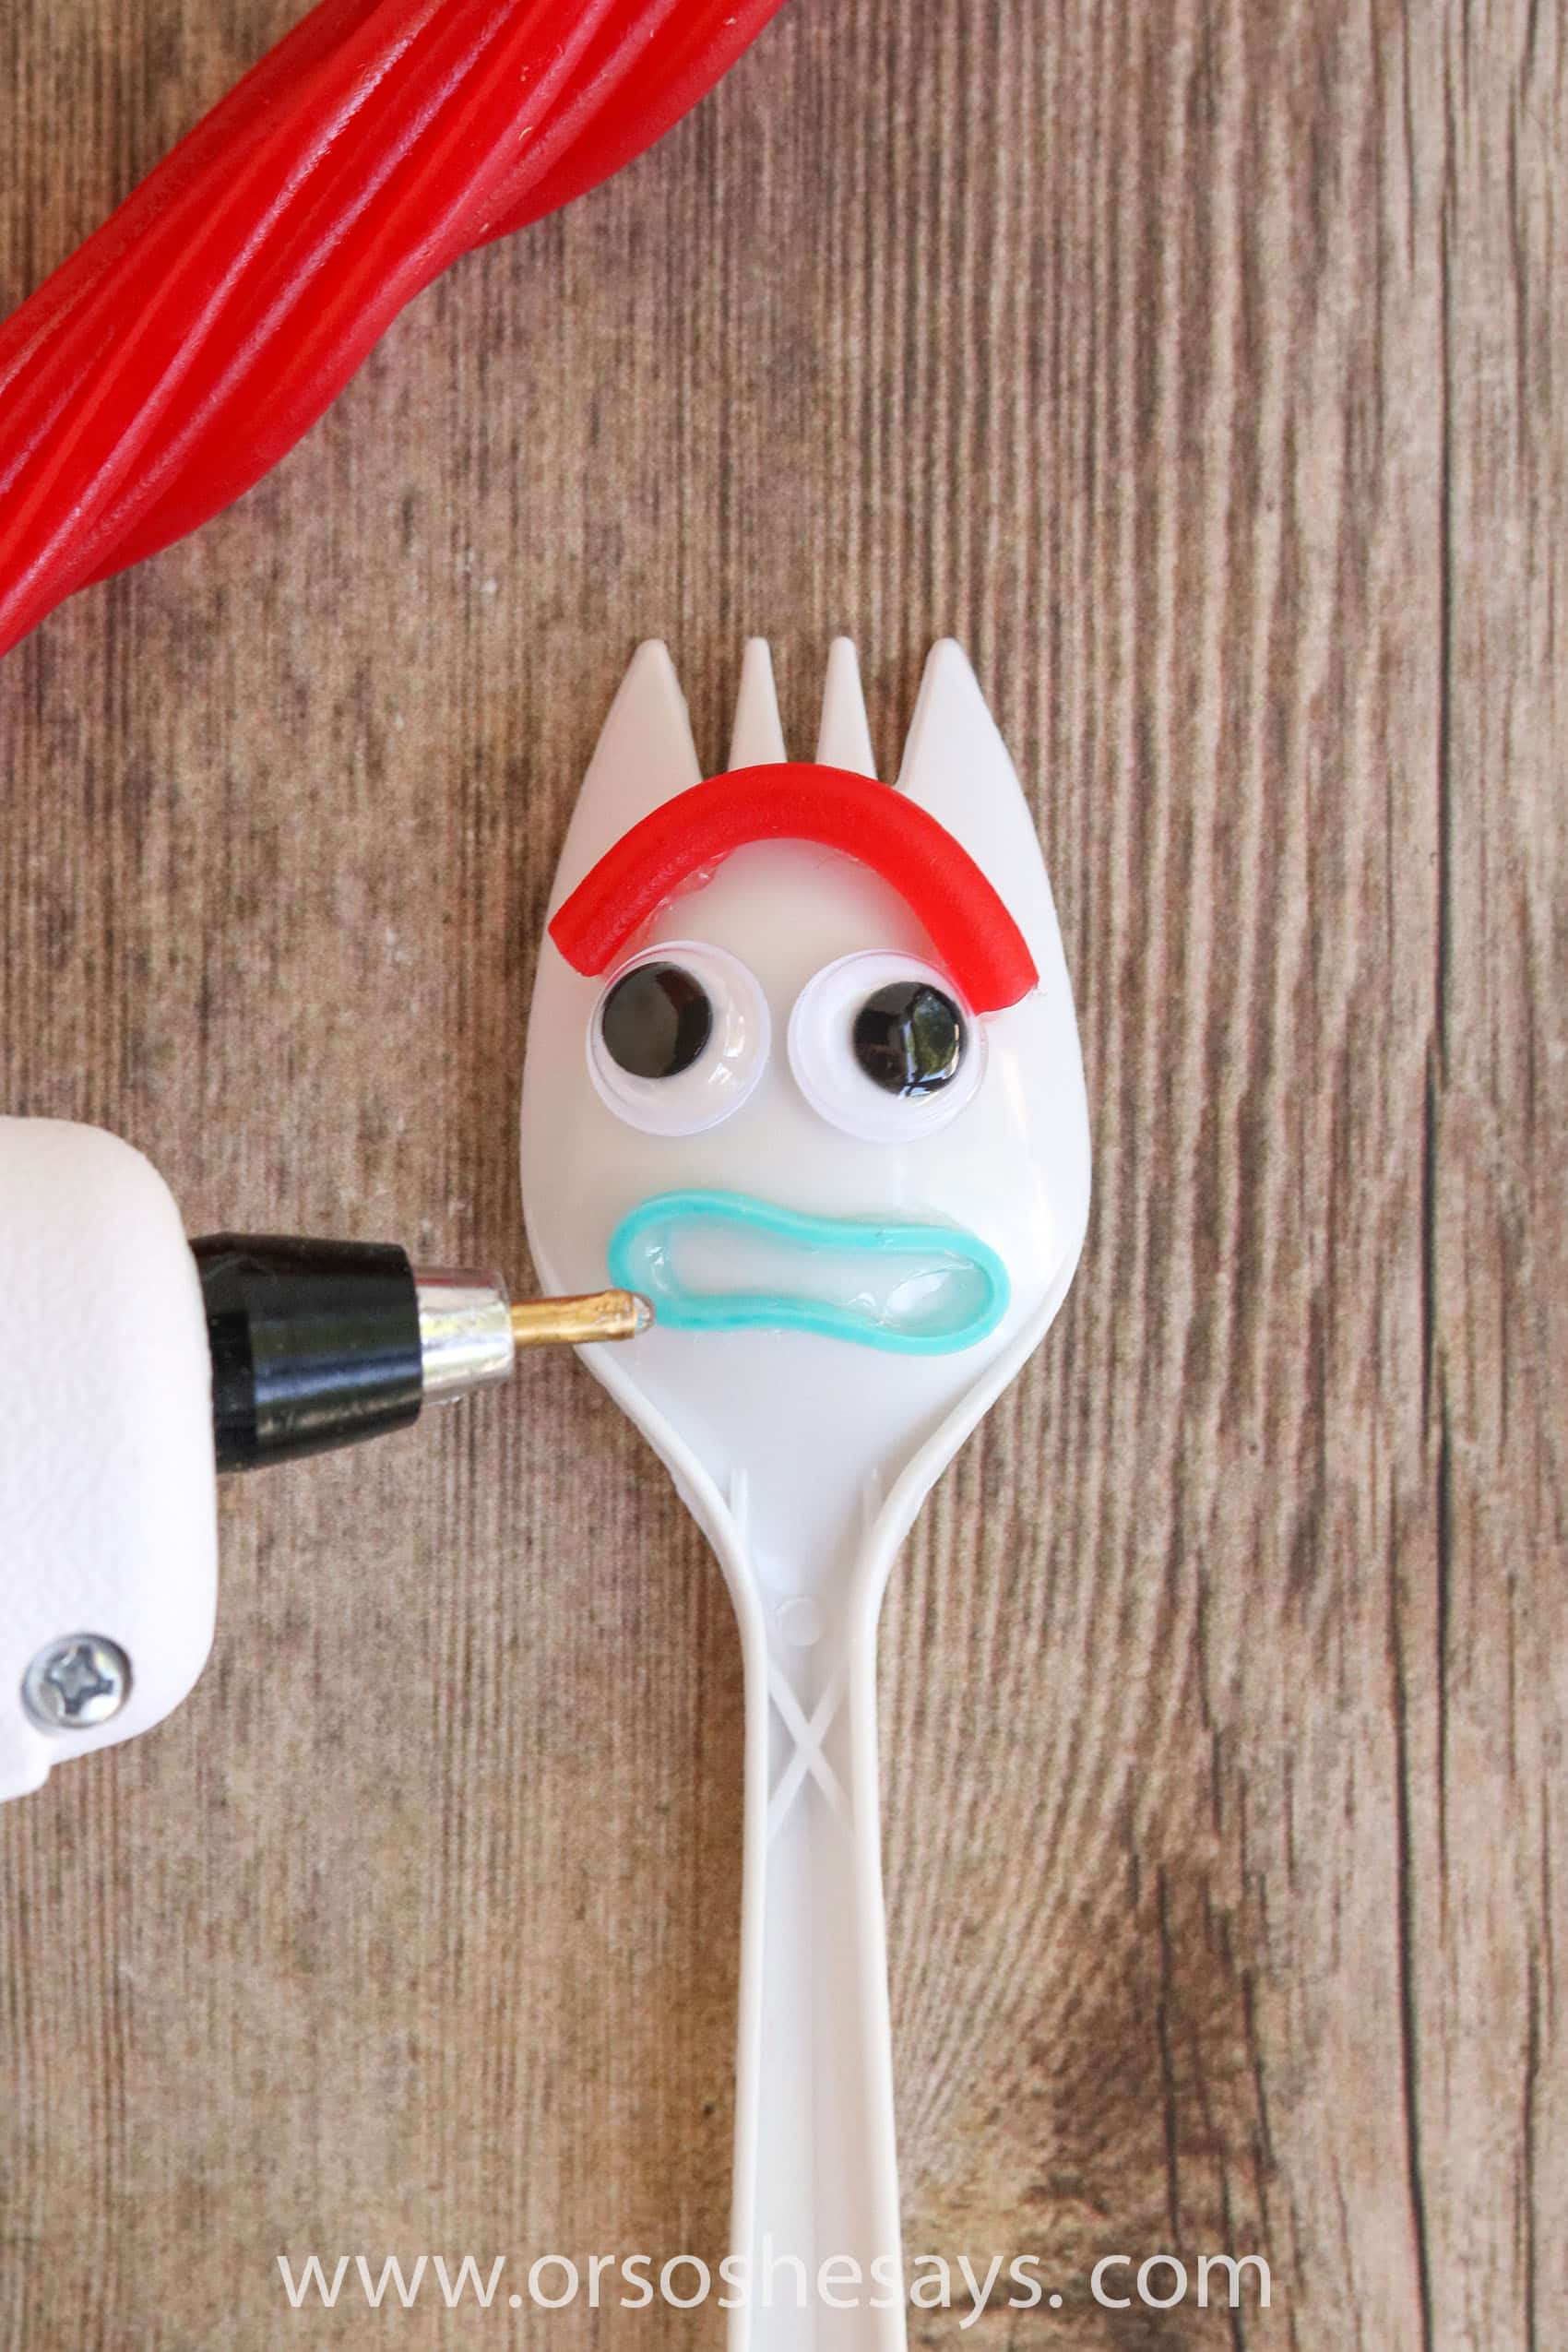 This DIY Forky from Toy Story 4 is so adorable! Perfect for a Toy Story birthday party activity or to make on a summer day. #toystory #toystory4 #forky #disney #disneyland